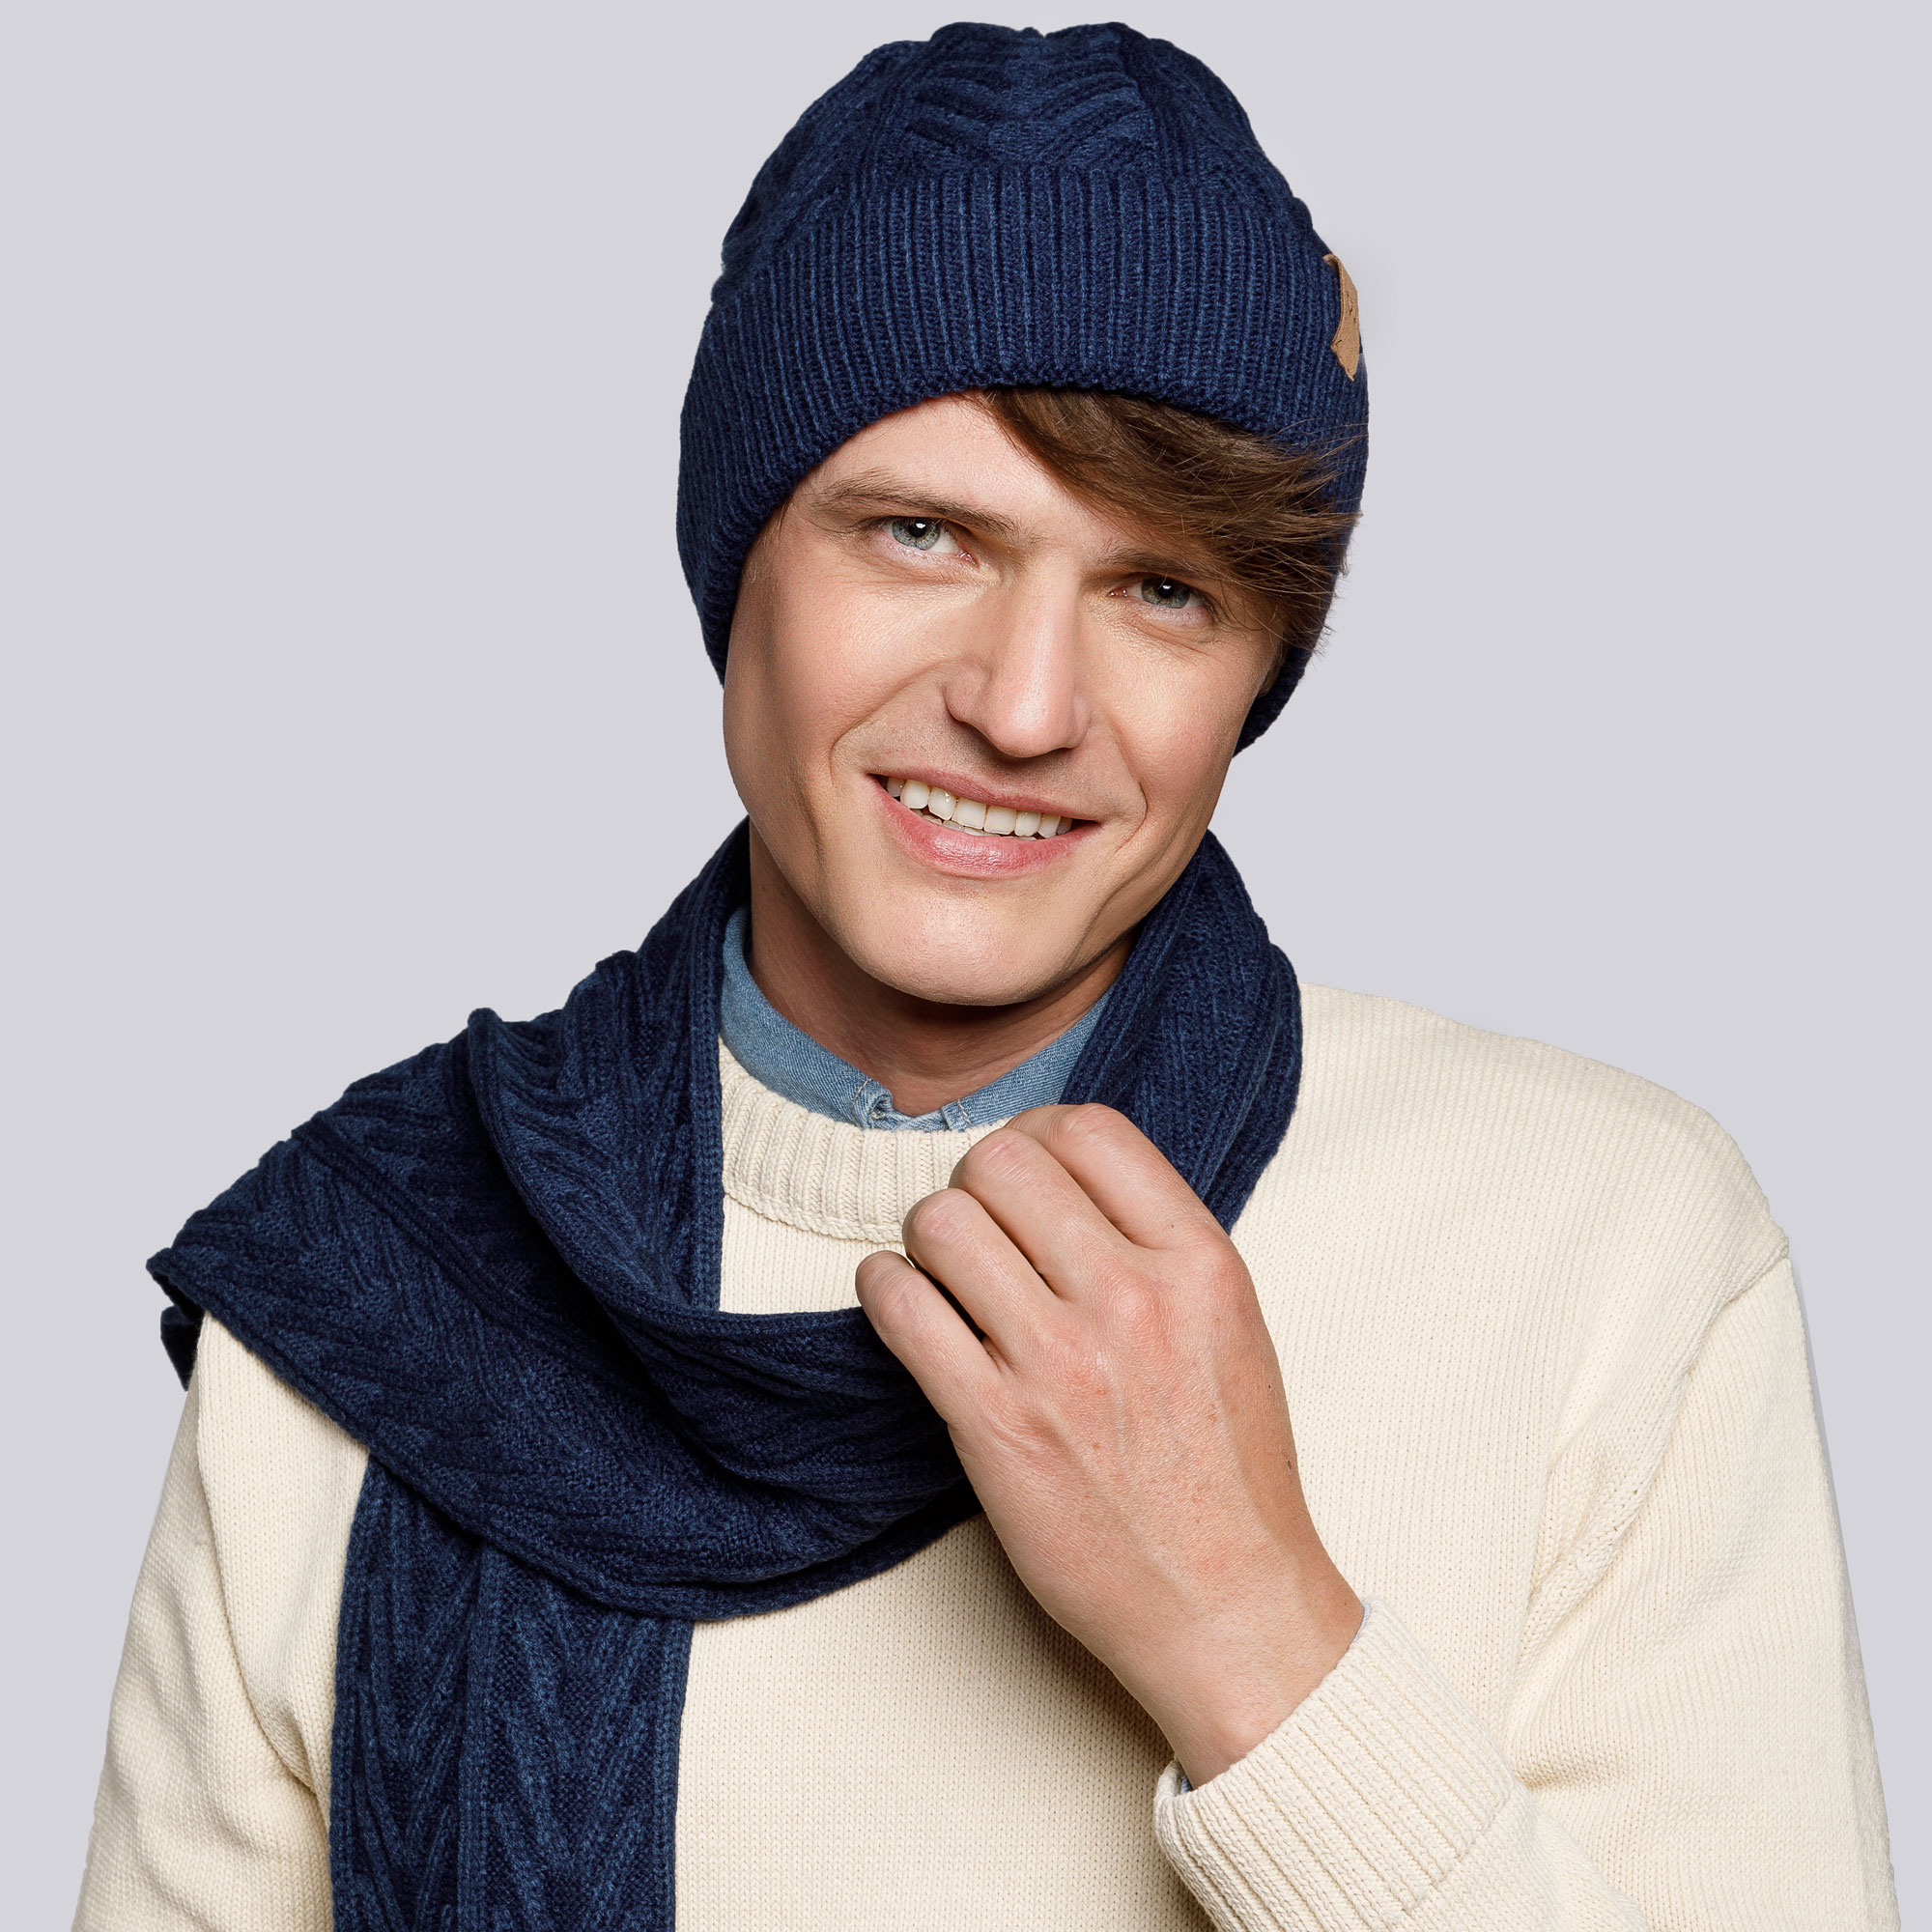 Men's winter cable knit hat and scarf, navy blue, 93-SF-004-7, Photo 1